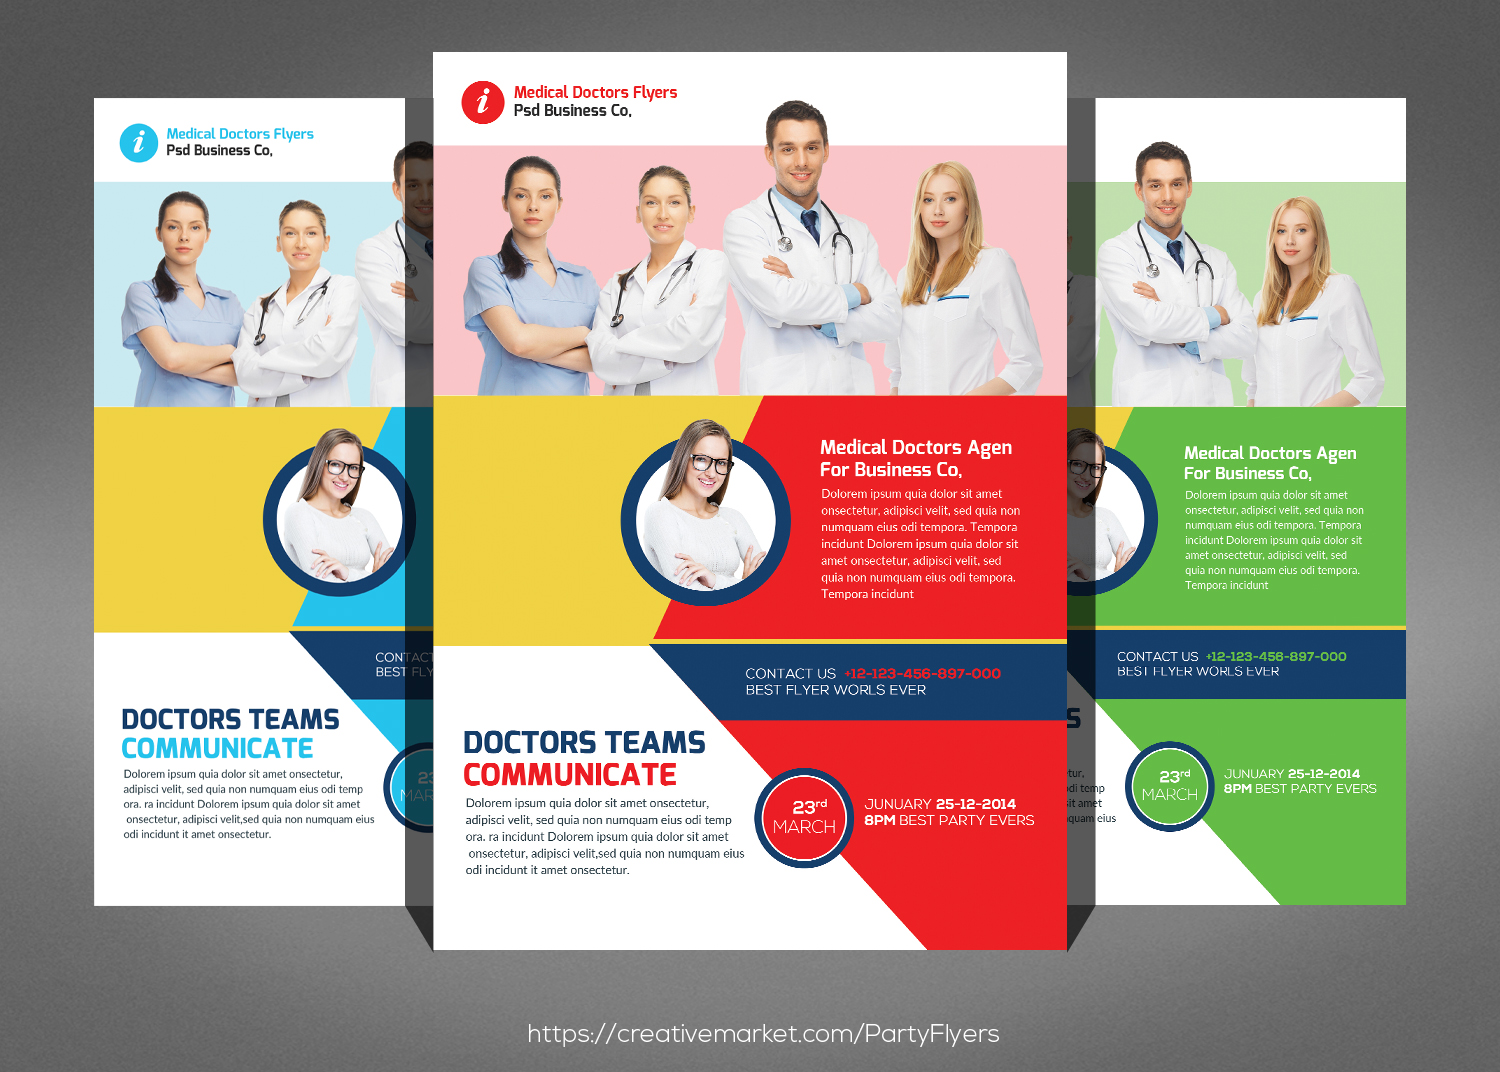 Medical Doctors Flyer psd example image 1